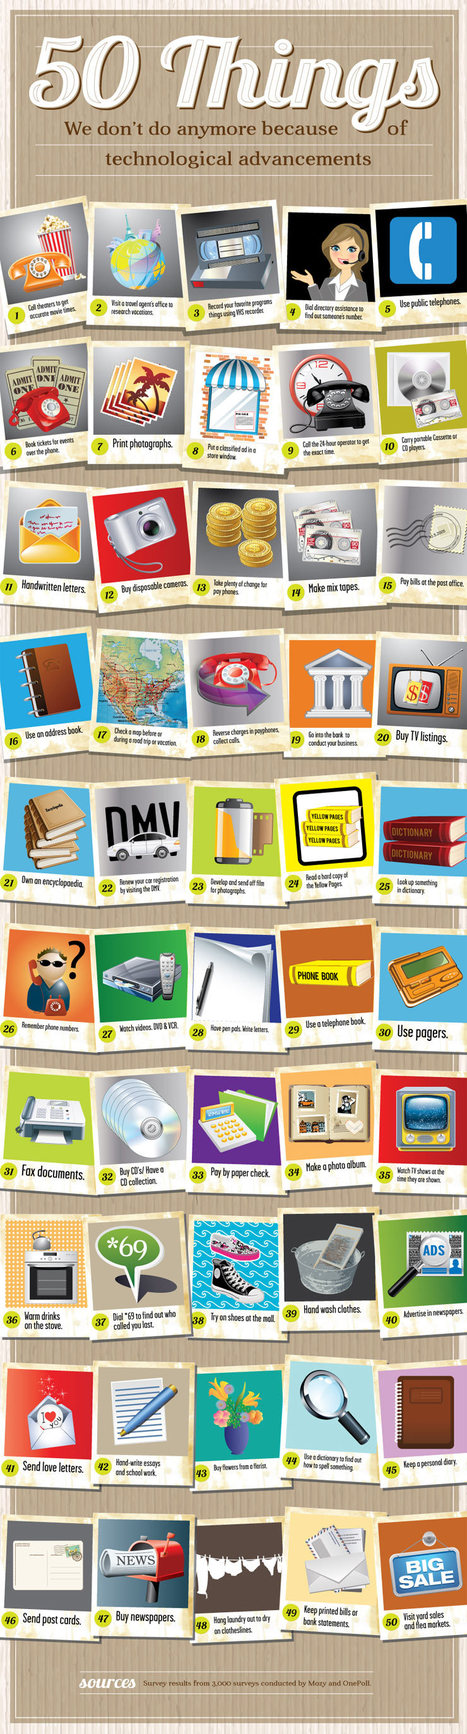 50 Things we don't do anymore Due to Technology an Infographic /@BerriePelser | Blogging | Scoop.it